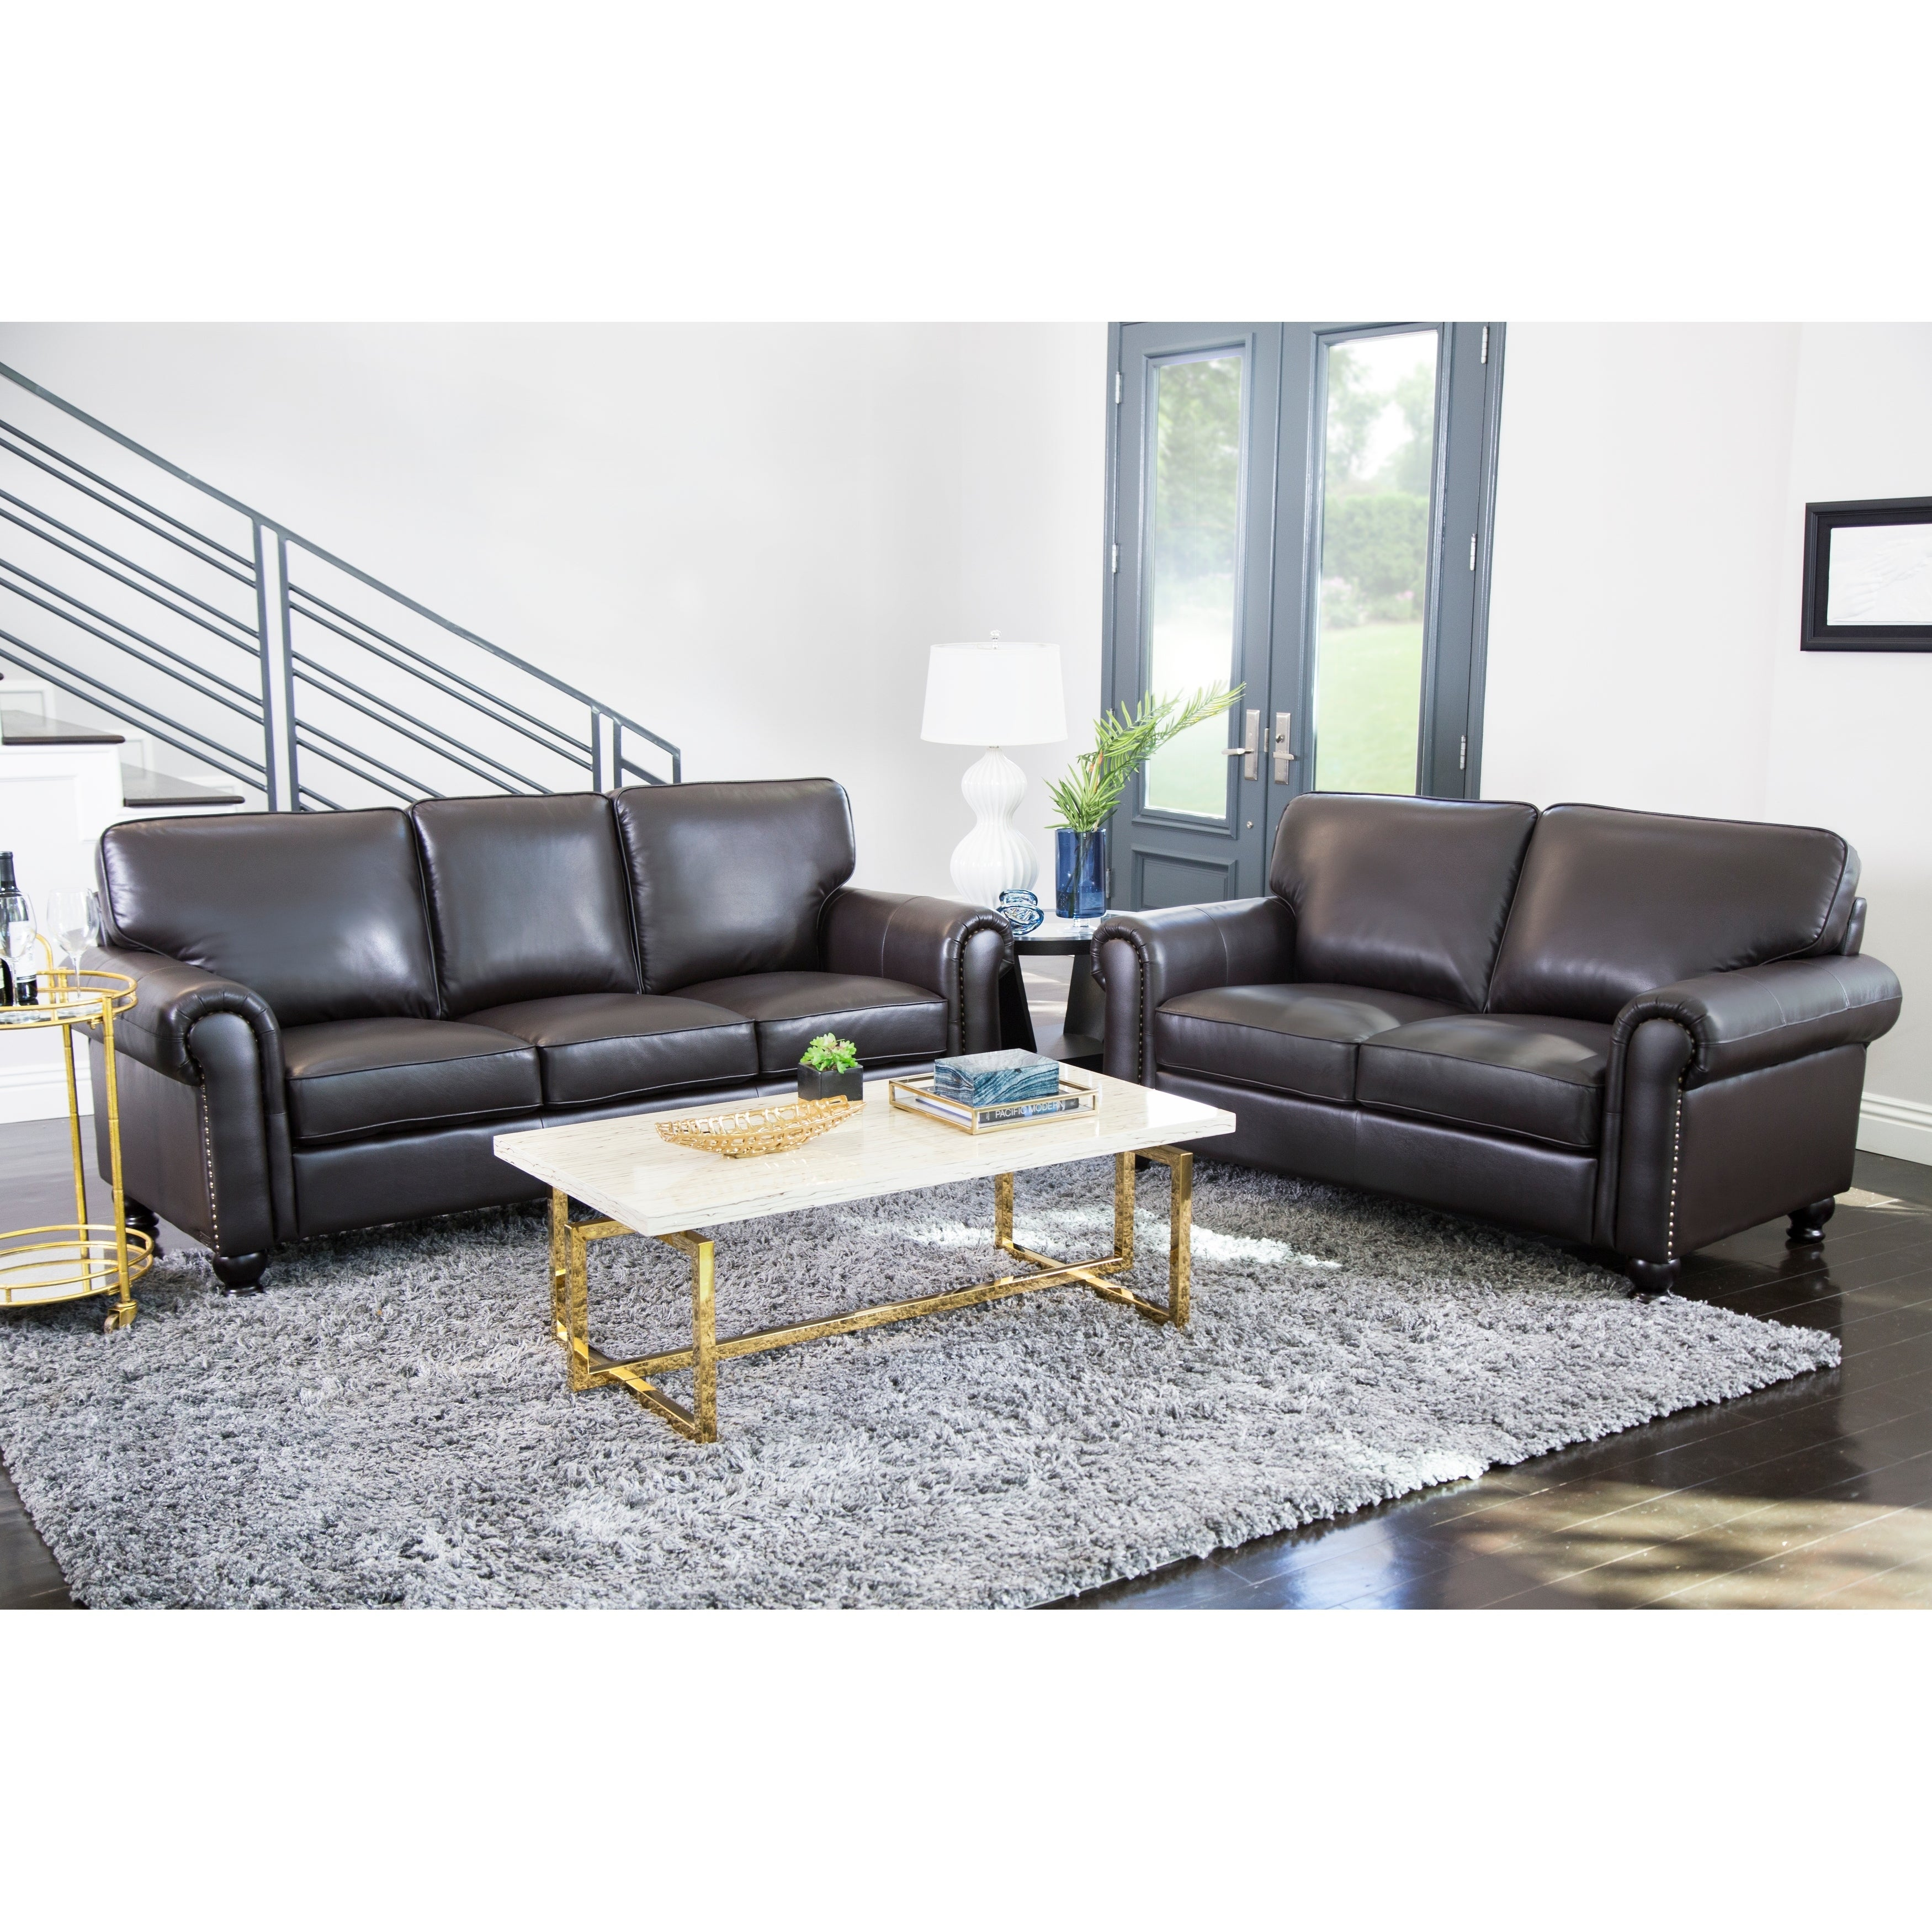 Abbyson London Top Grain Leather 2 Piece Living Room Set - Free ...